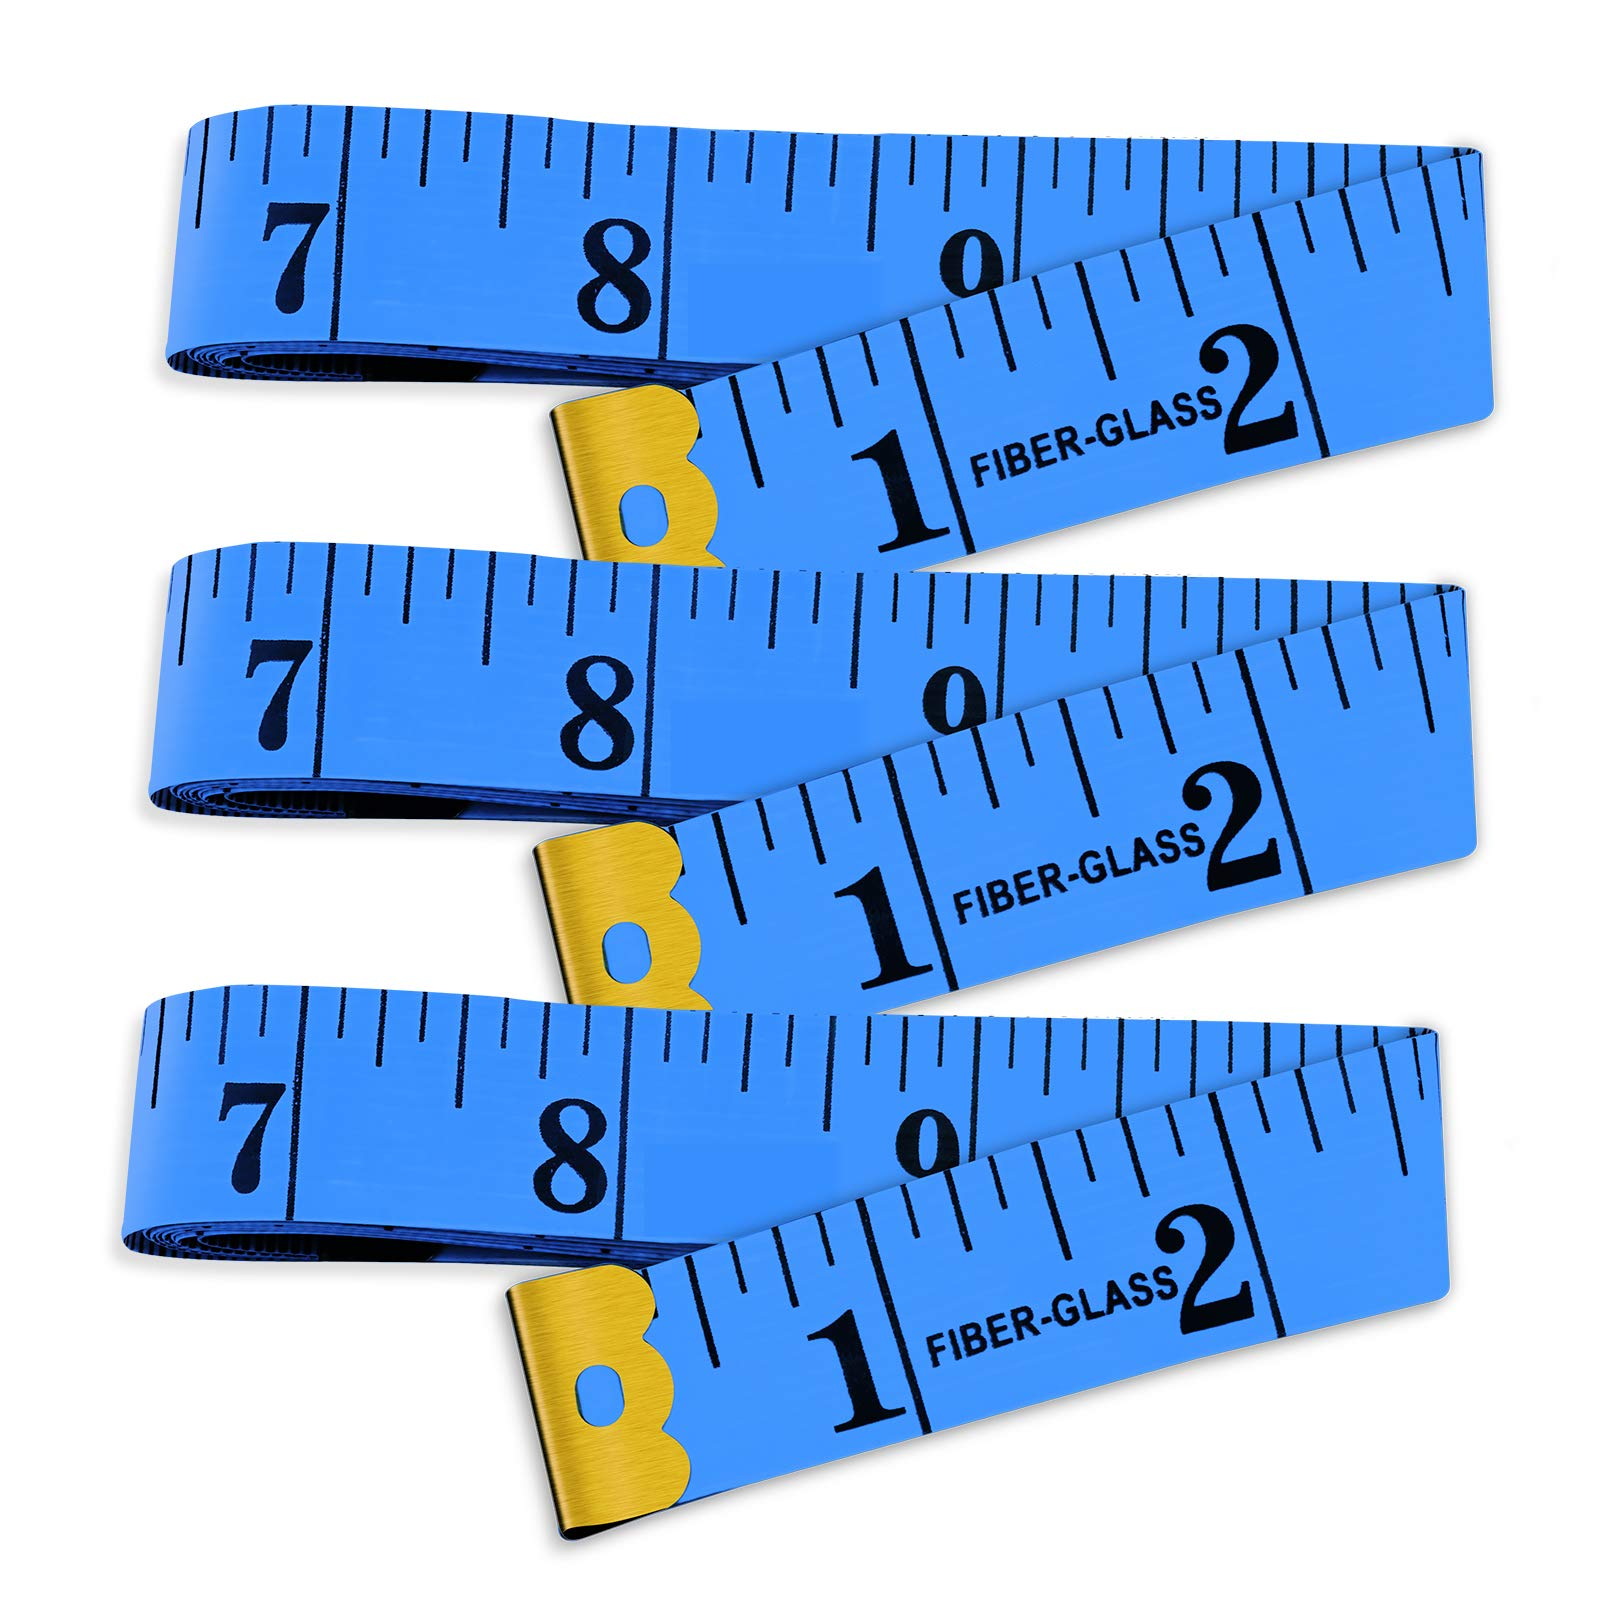 Yojoloin 3PCS 60 inches Double Scale Soft Tape Measure Flexible Ruler for Measuring Weight Loss Medical Body Measurement Sewing Tailor Dressmaker Cloth Ruler with Accurate Measurements(150cm/60inch)